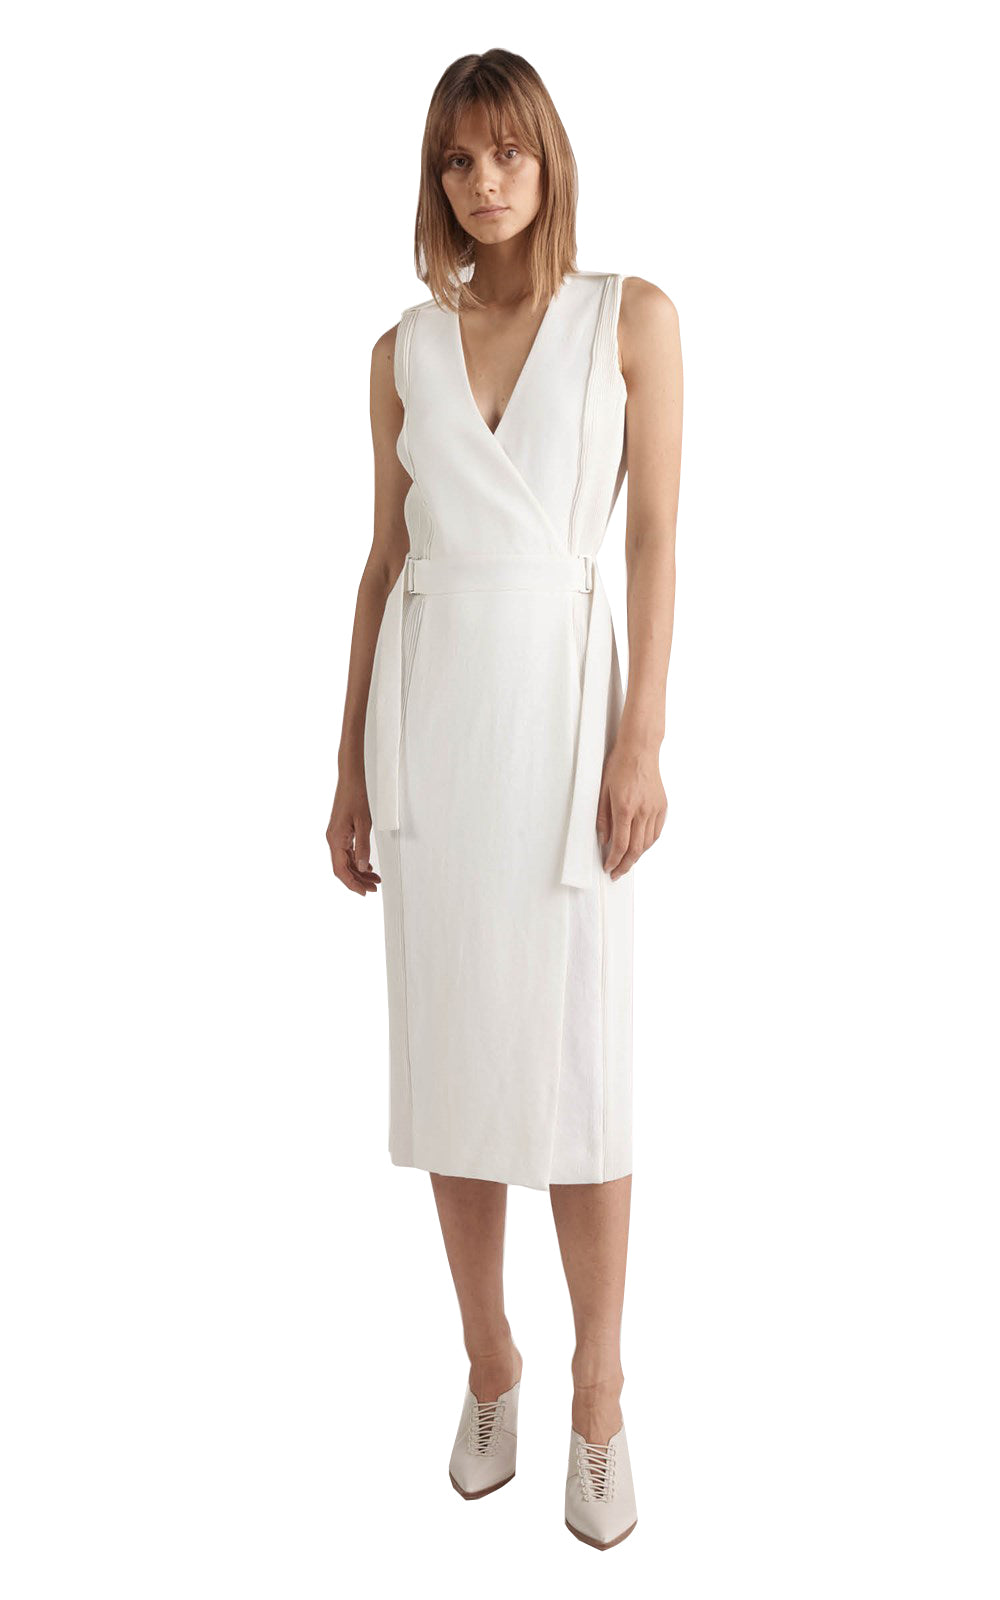 5d2d72f0c9 DION LEE CORRUGATED PLEAT DRESS WHITE – THE STYLE SET